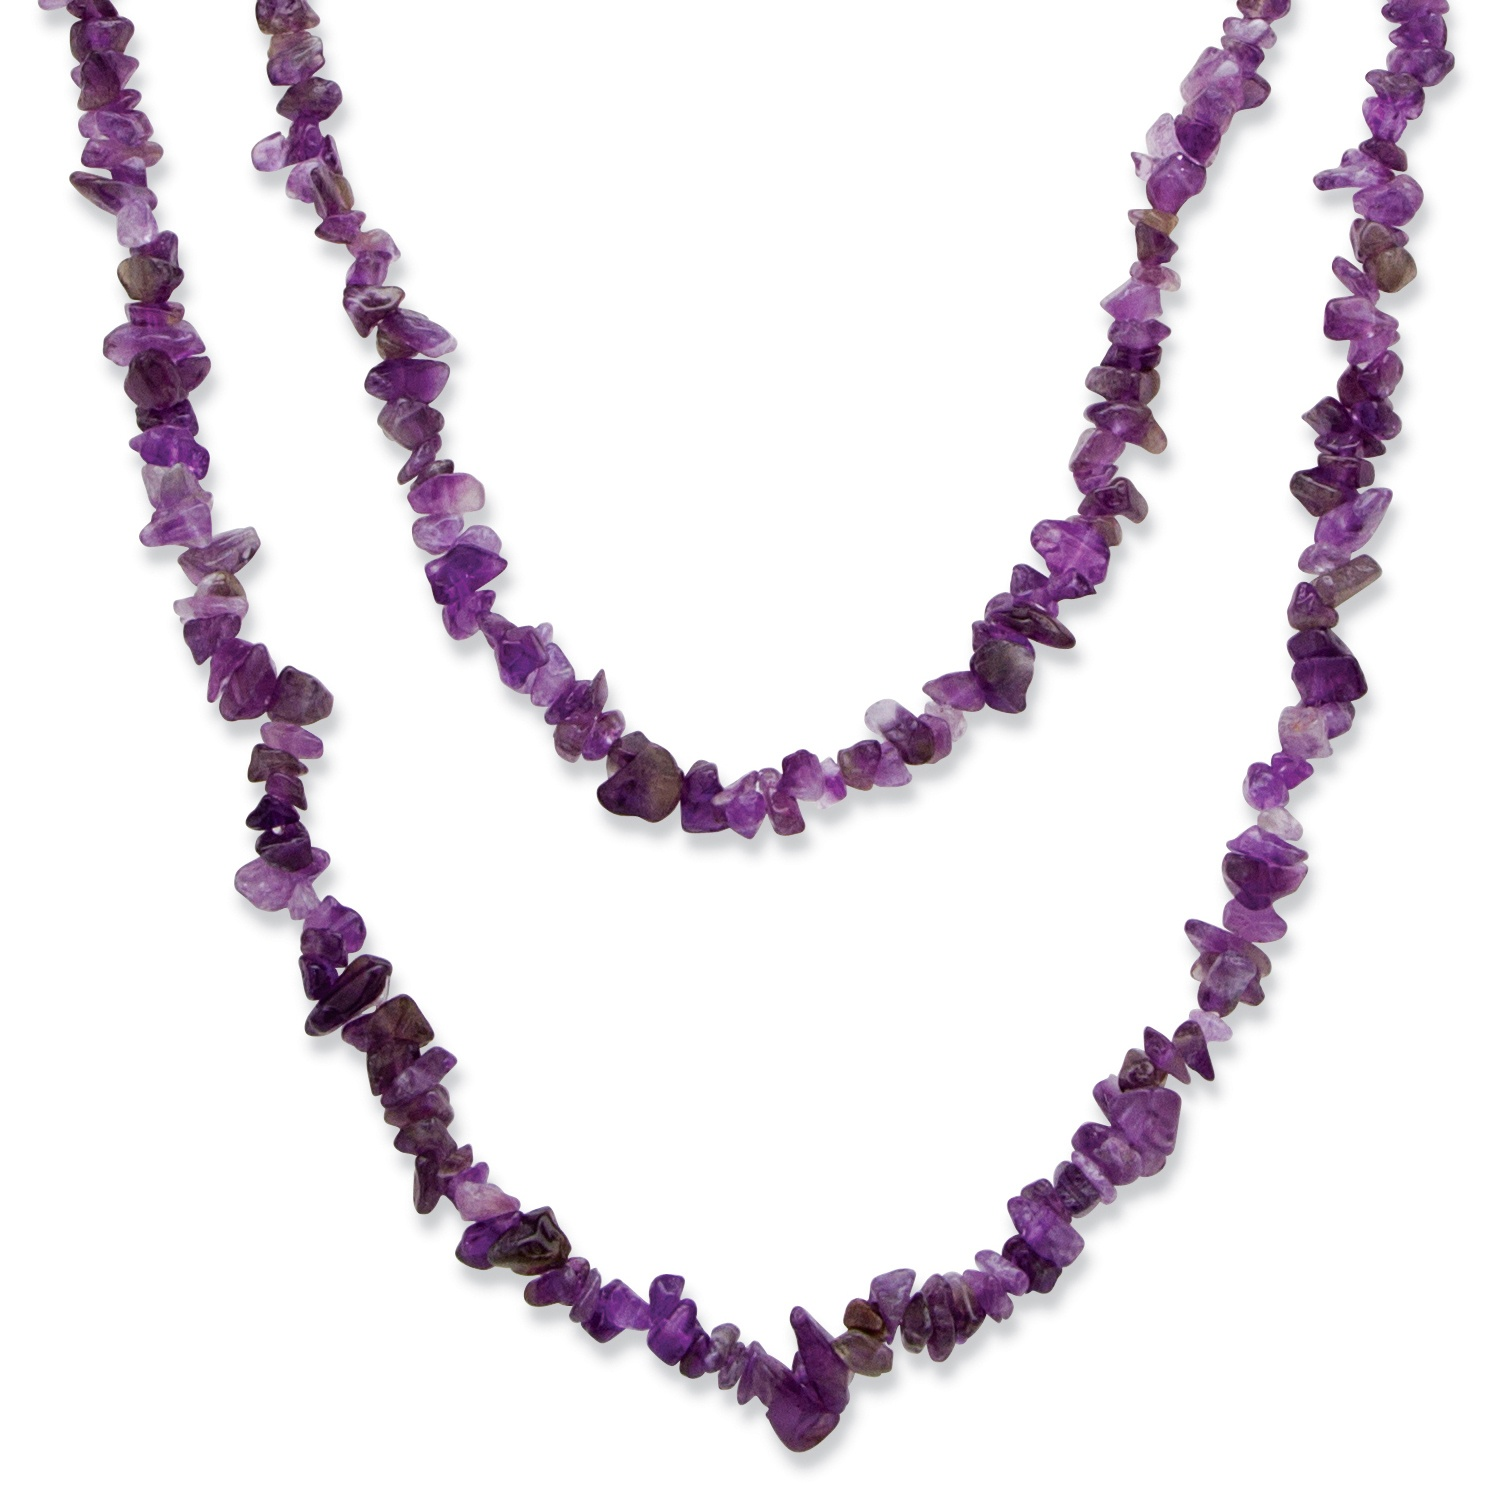 Nugget-Cut Genuine Purple Amethyst Necklace 54""